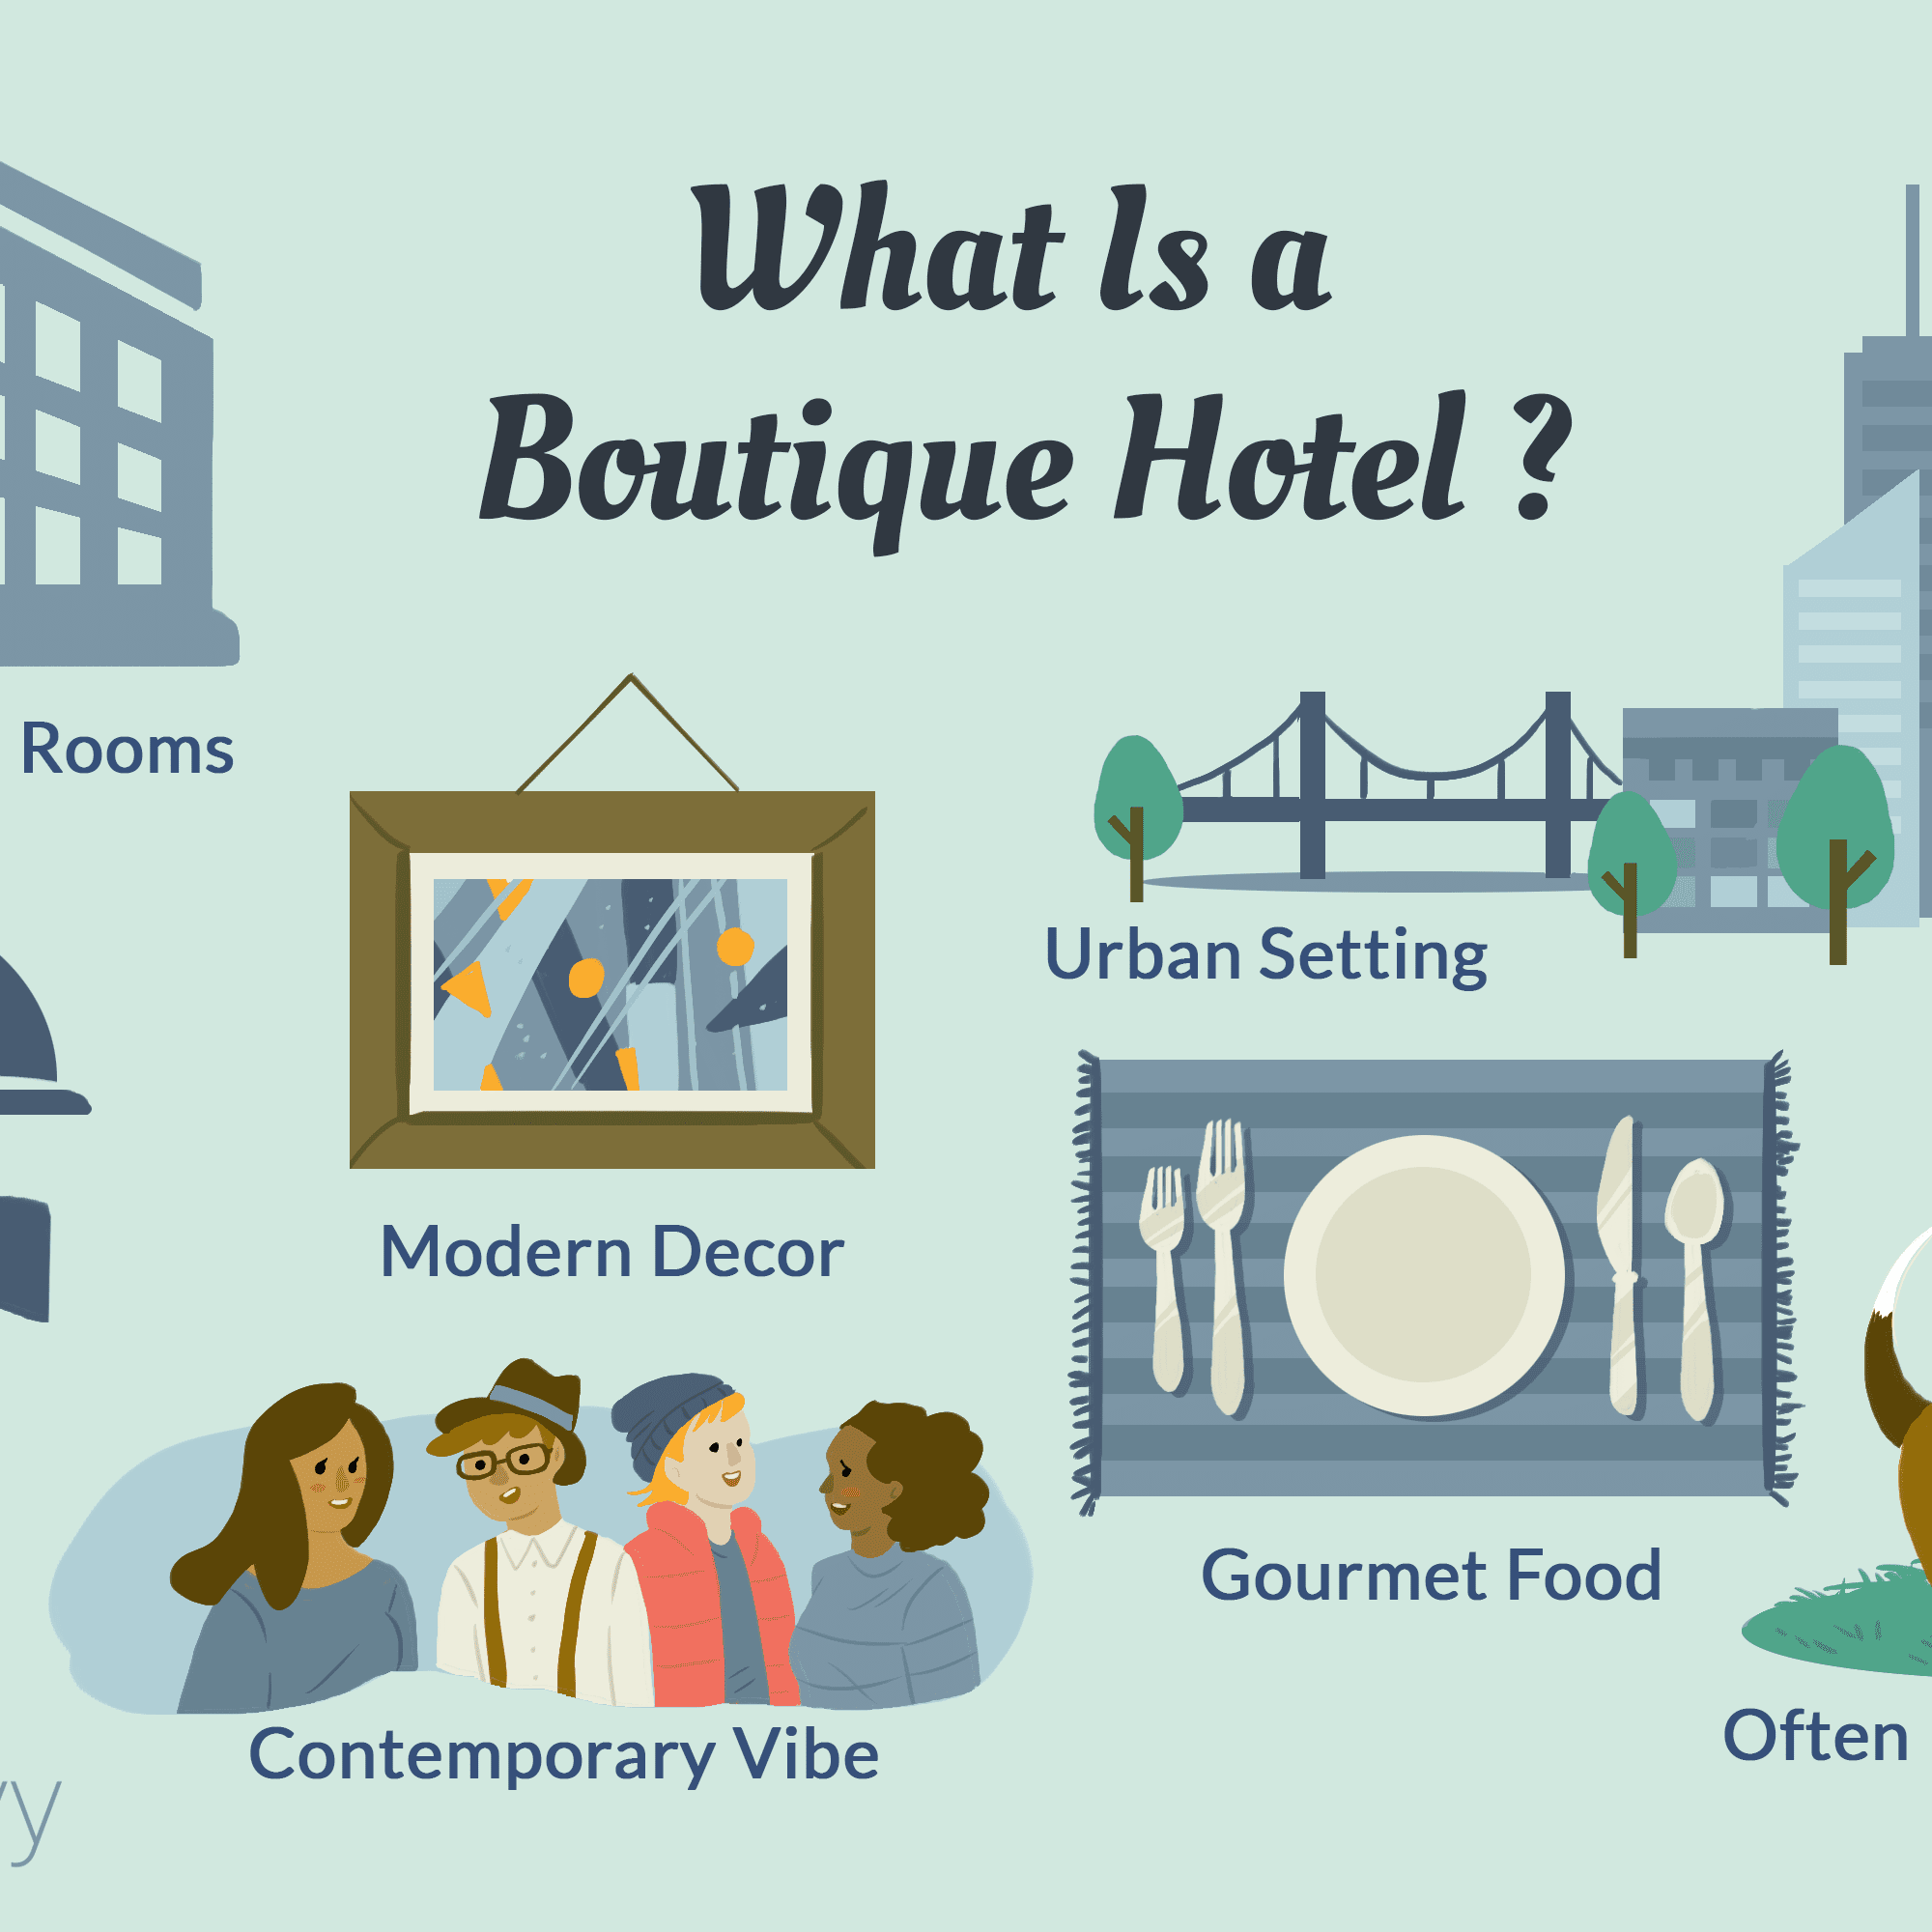 Definition and Examples of a Boutique Hotel